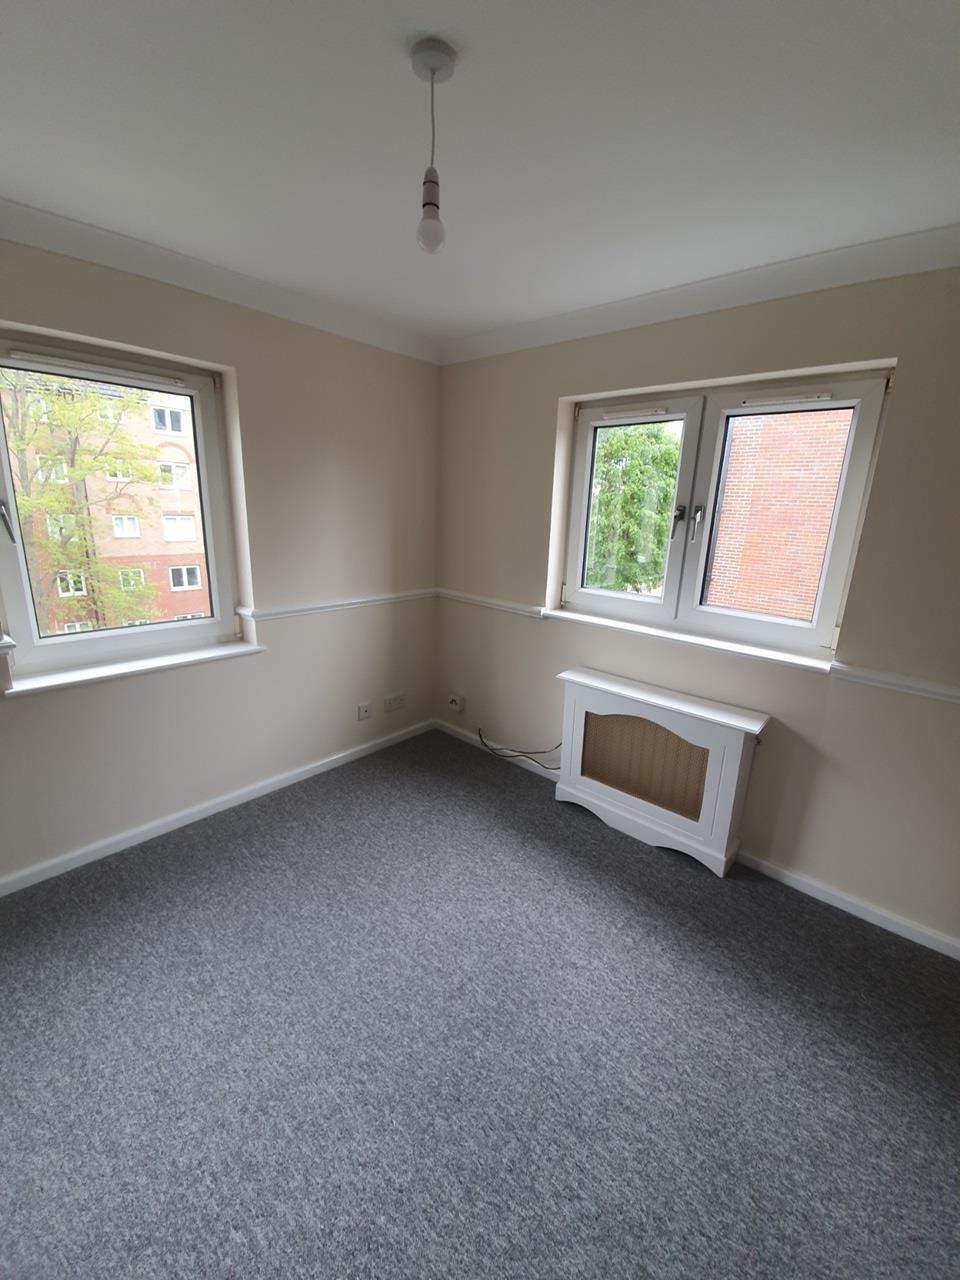 Eastbourne - 1 Bed Flat, Clovis Court, BN21 - To Rent Now ...